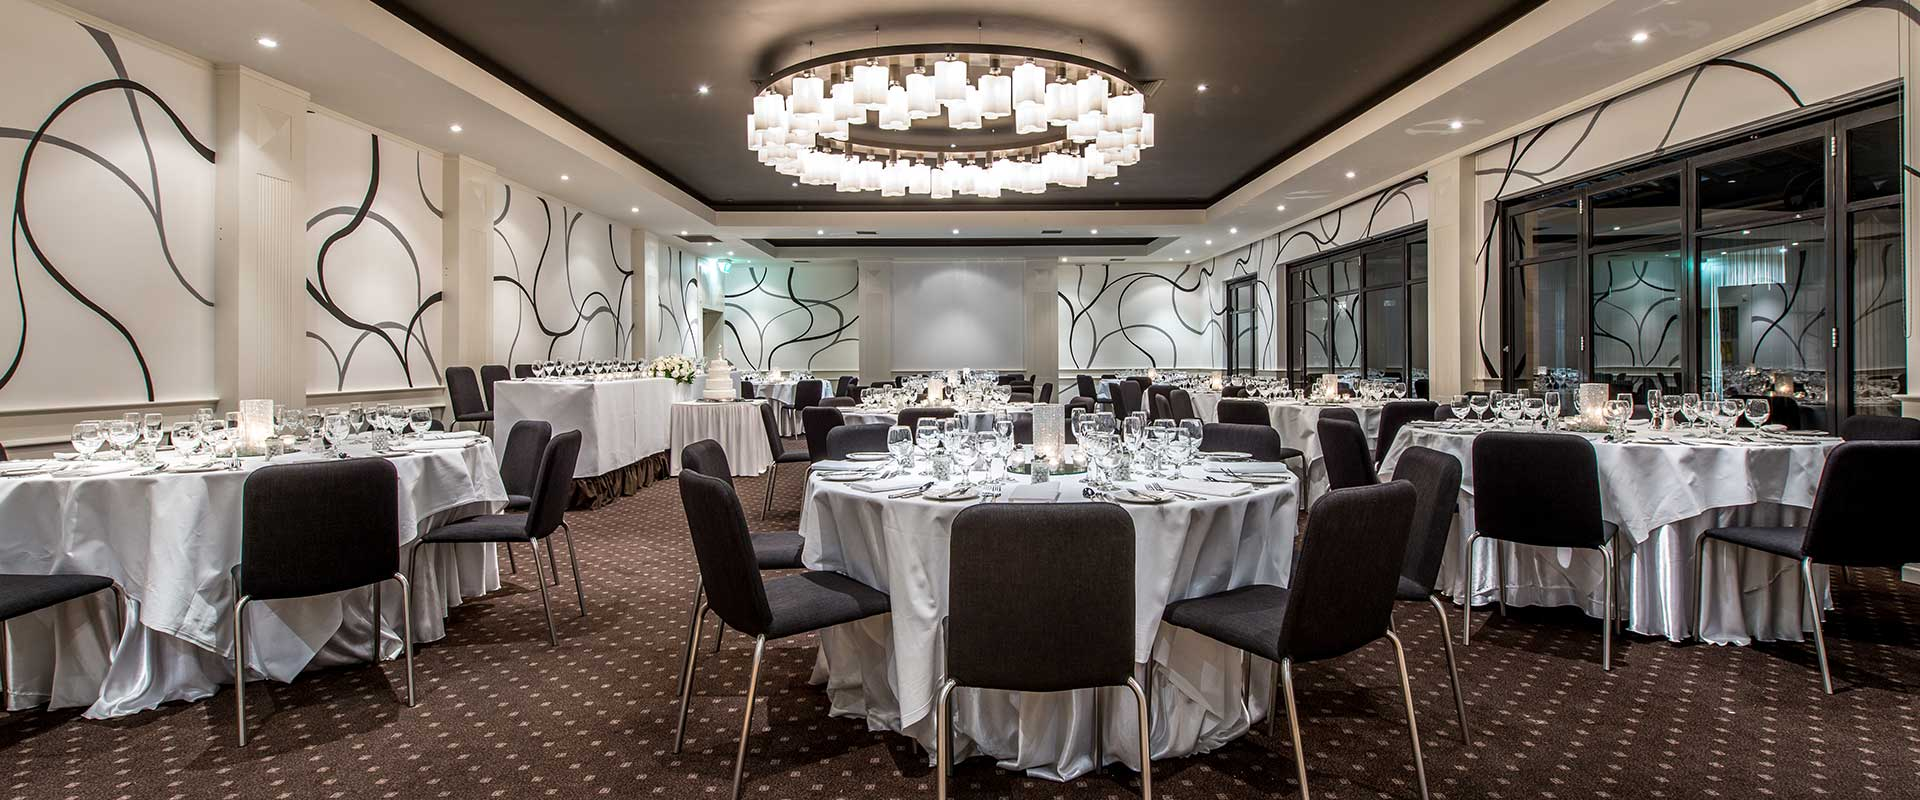 How to plan for the perfect function venues Melbourne?